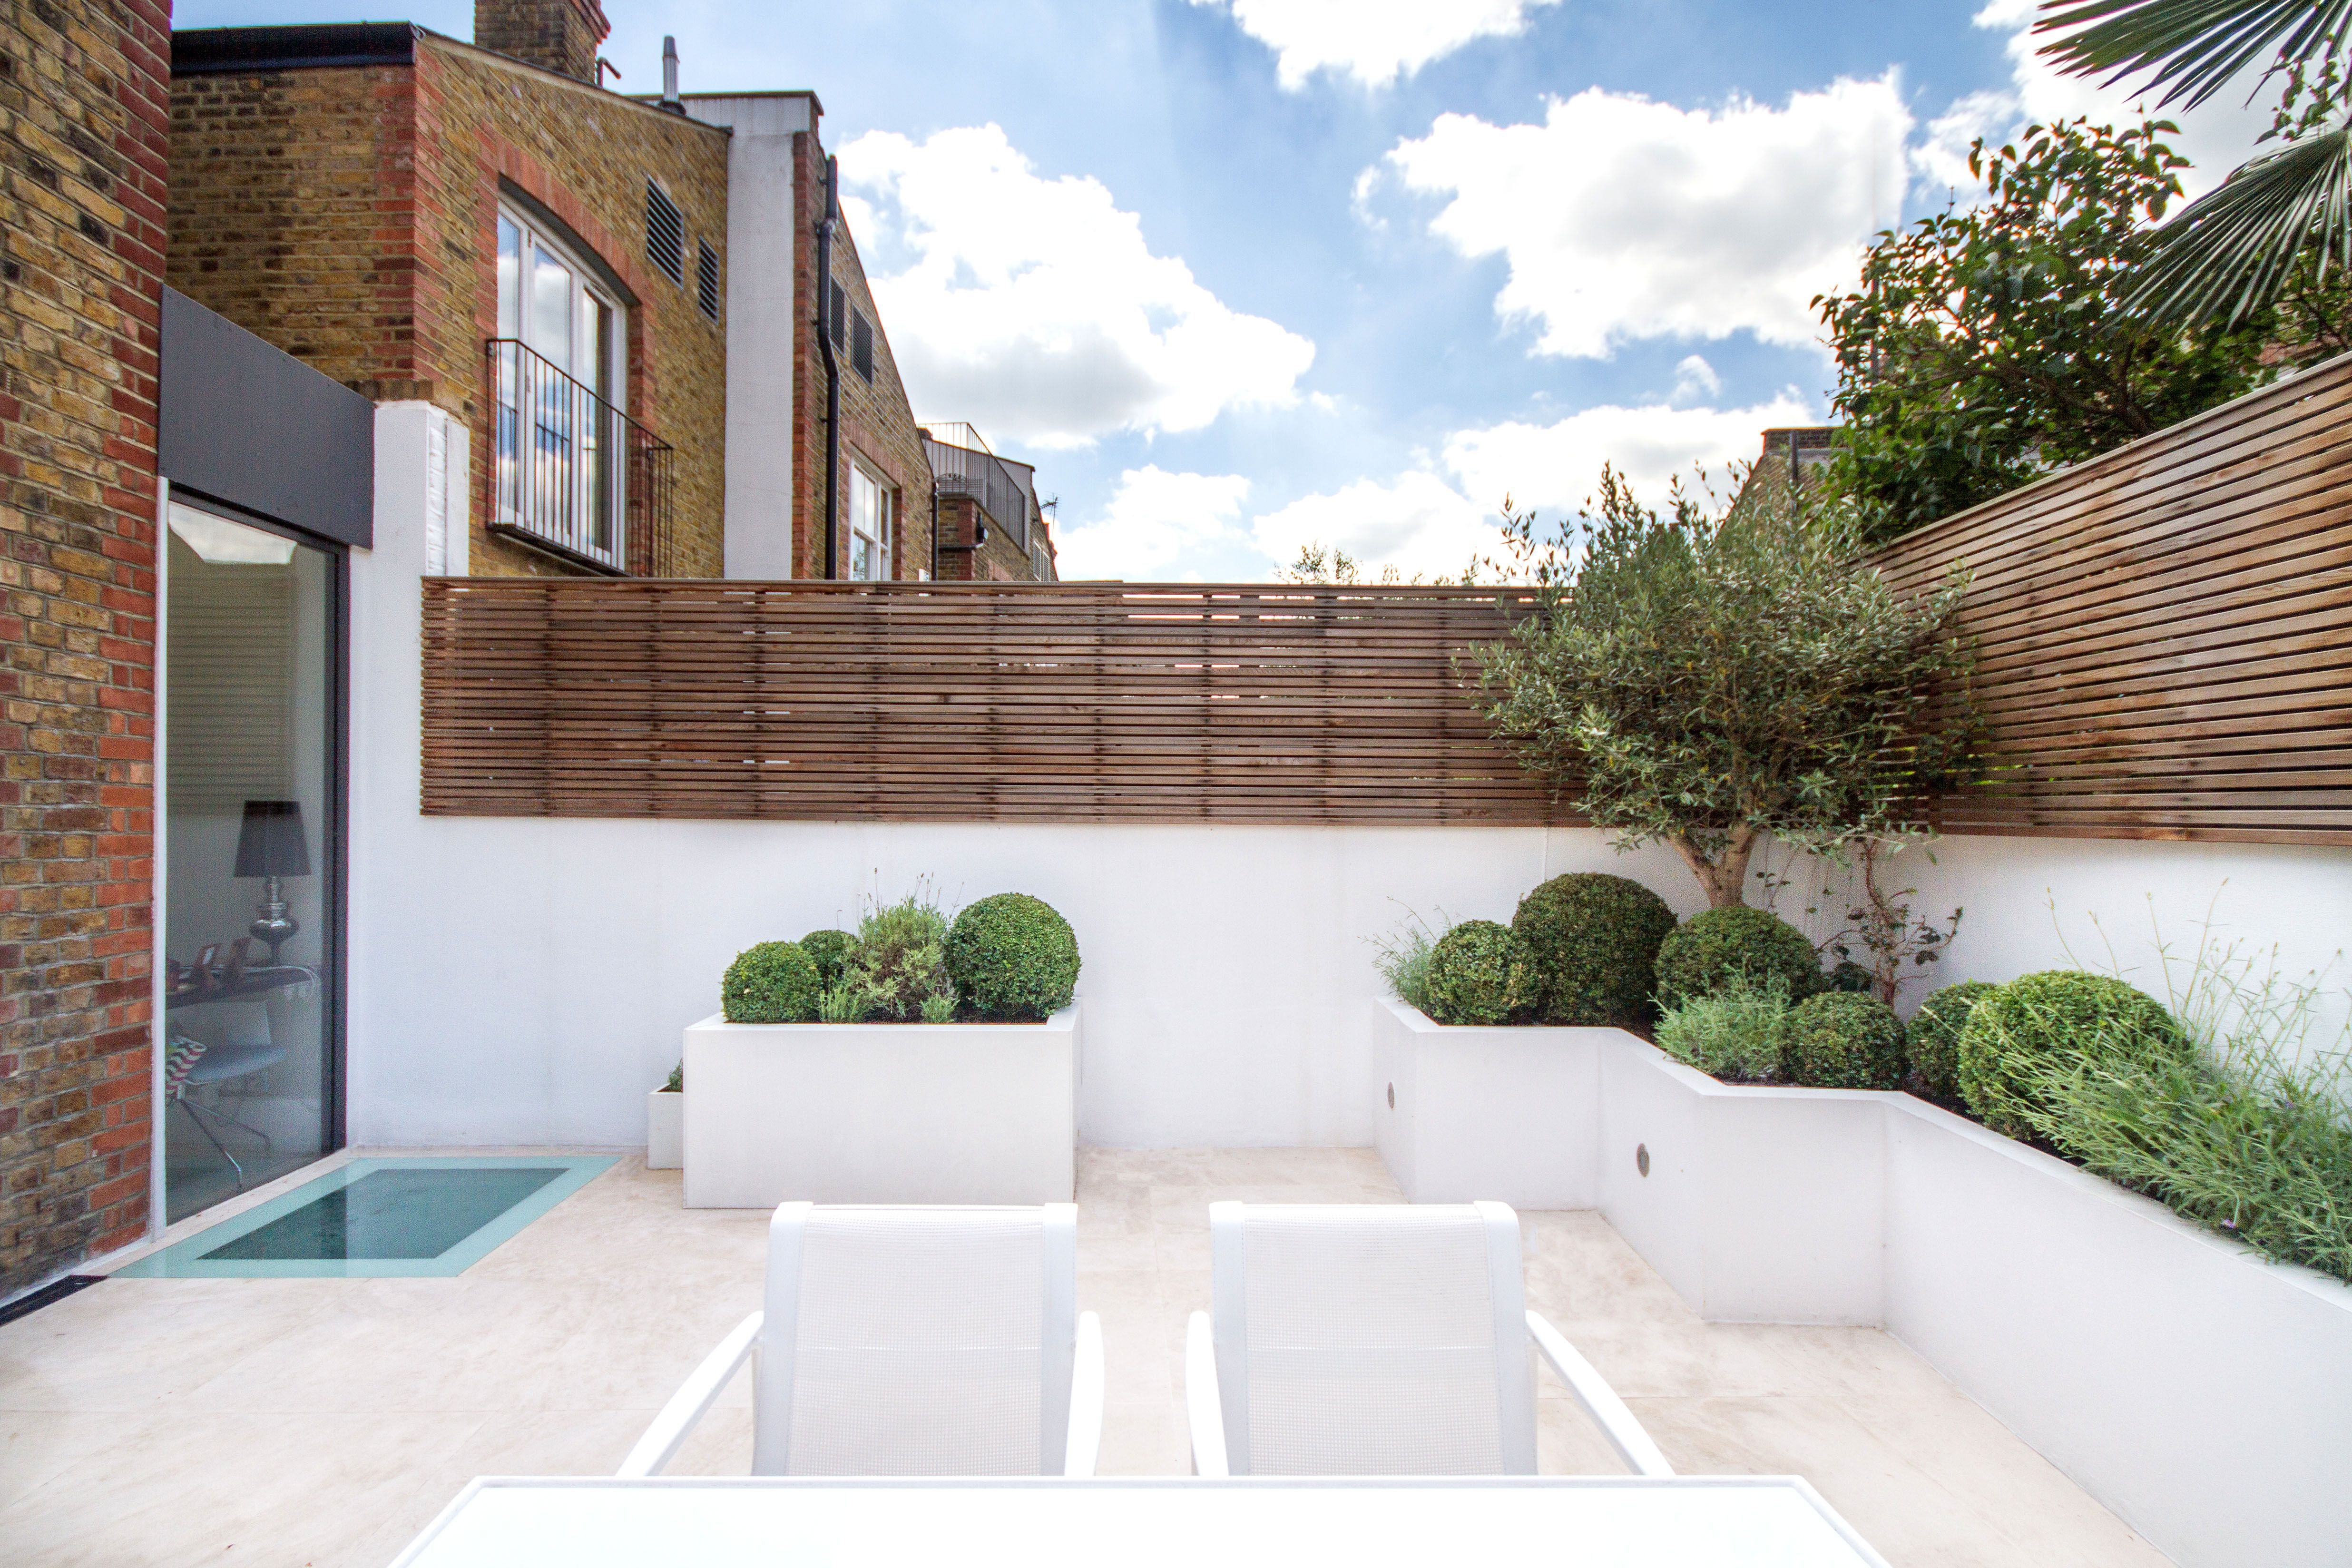 White Rendered Raised Beds And Limestone Paving With Slatted Trellis